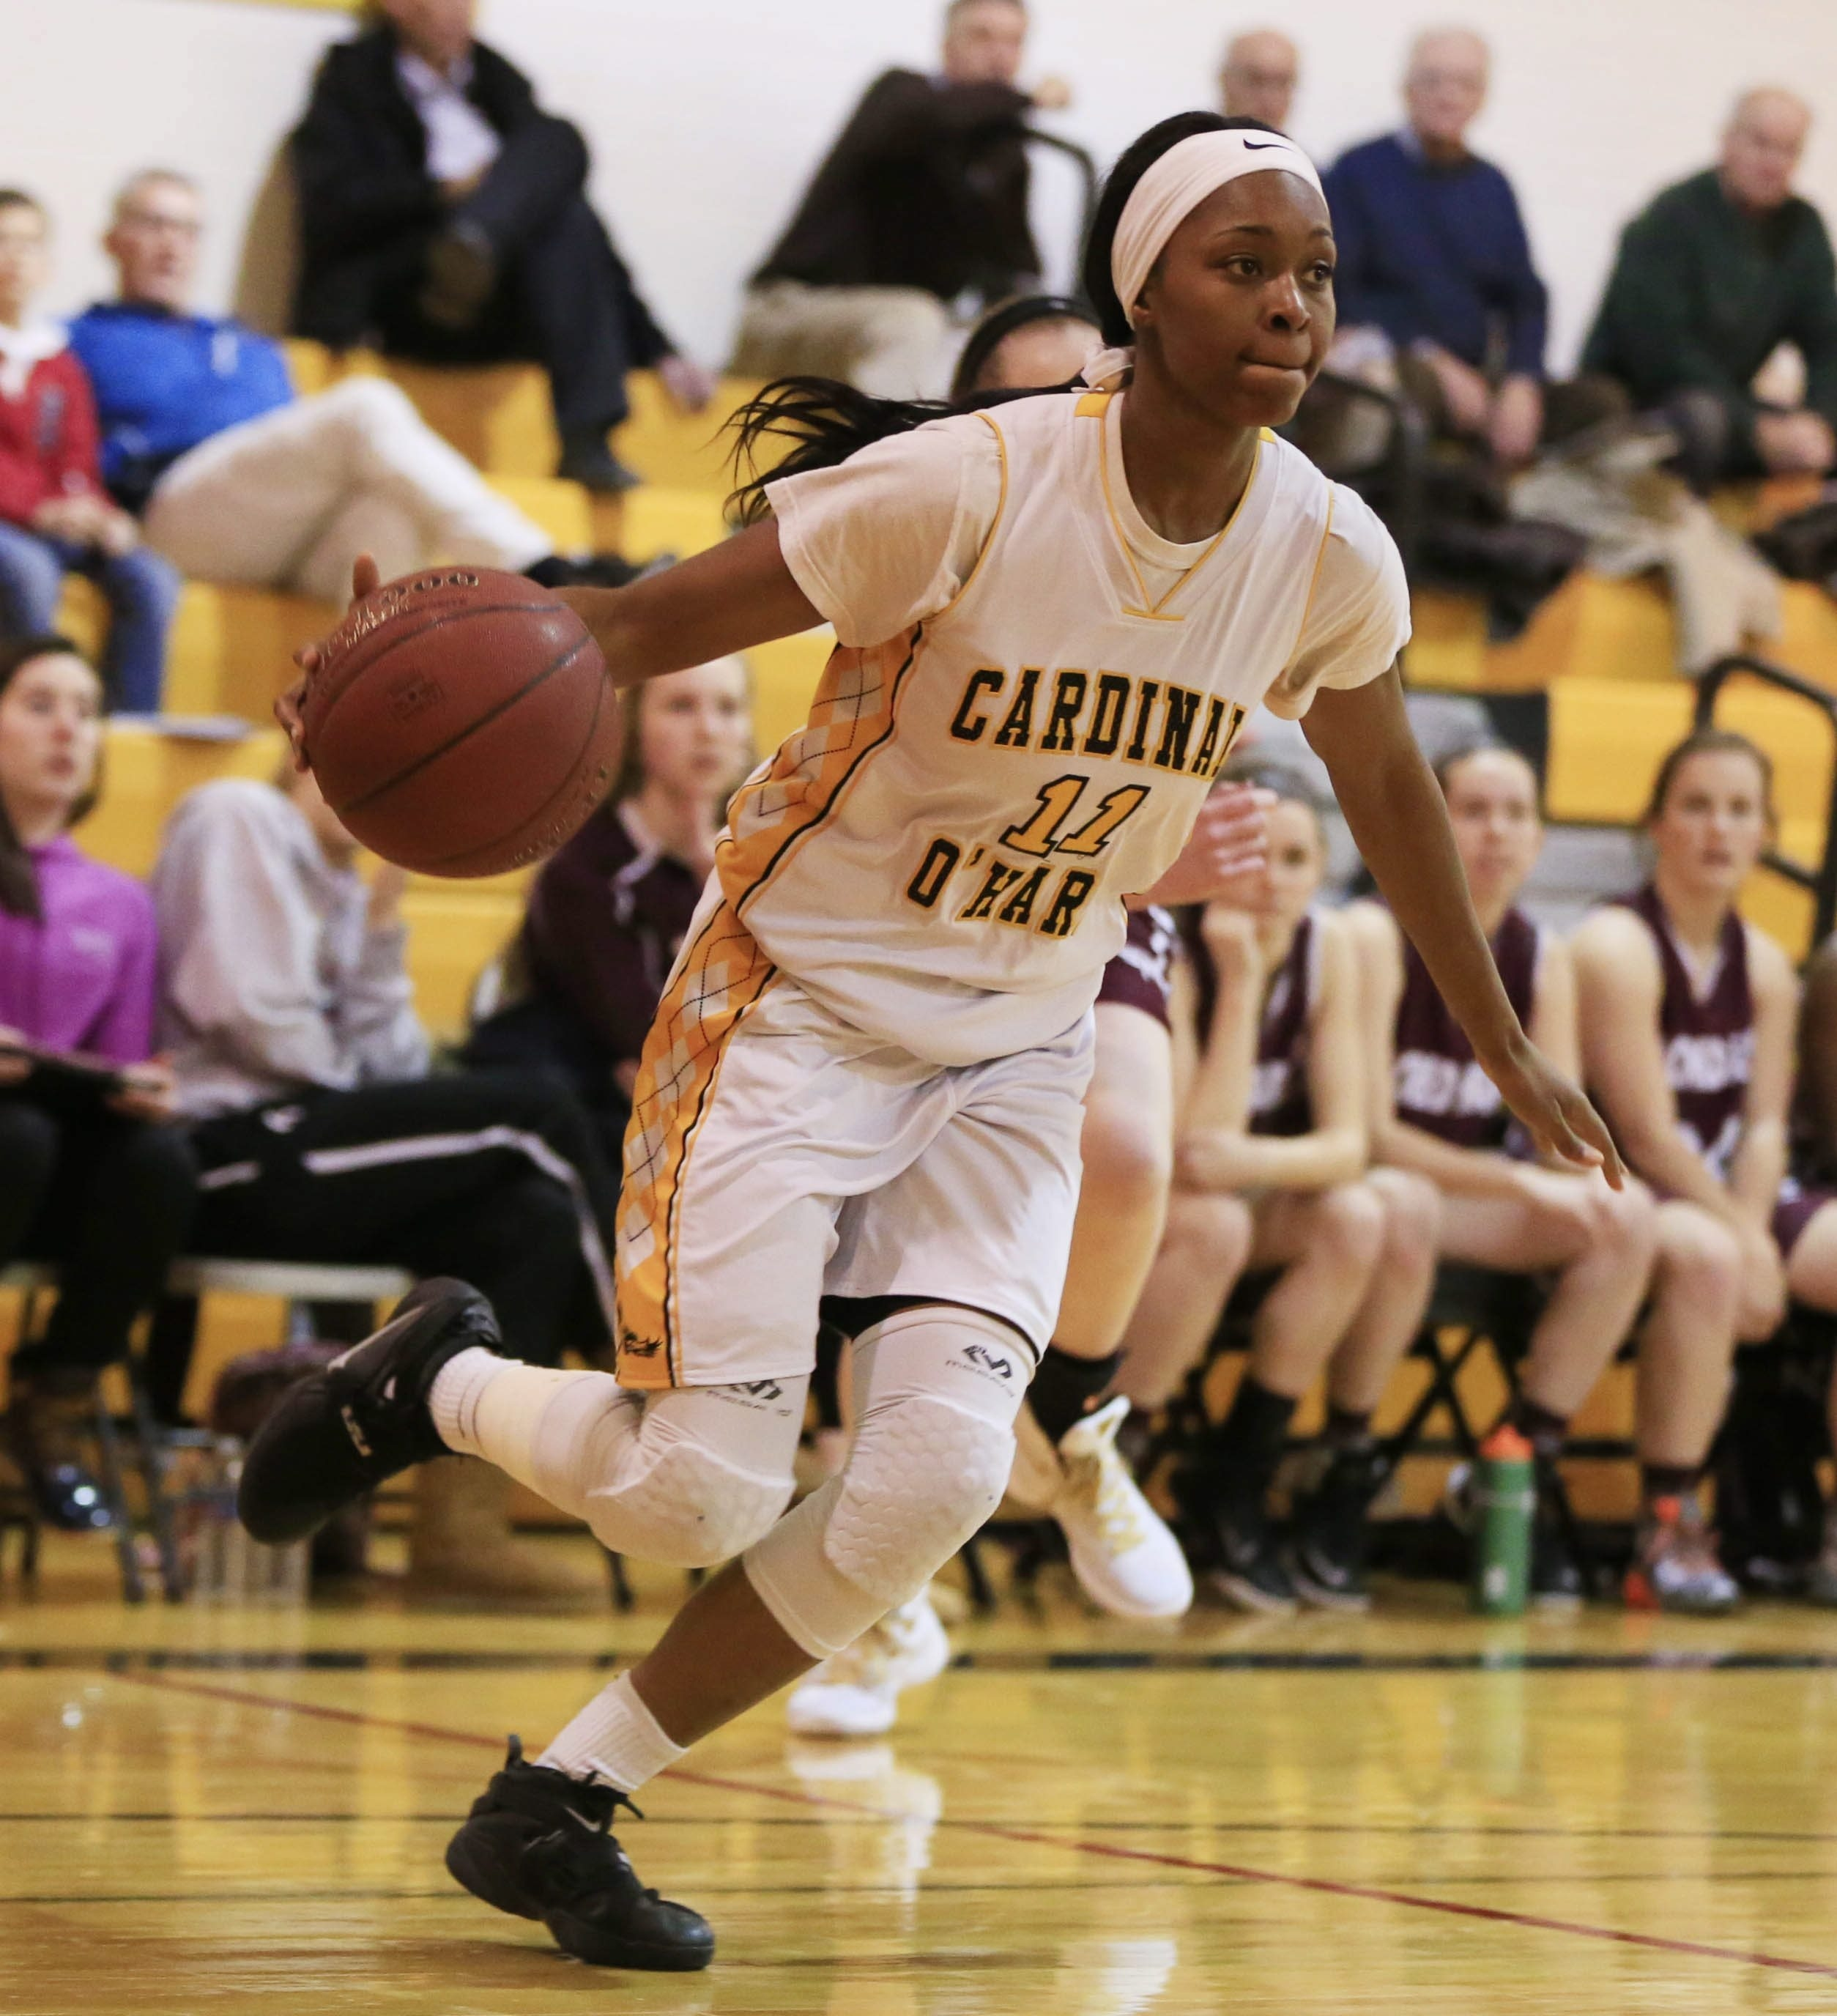 Cardinal O'Hara's Anndea Zeigler and her Hawks teammates were voted unanimously as the No. 1 Large School following a victory over second-ranked Sacred Heart.